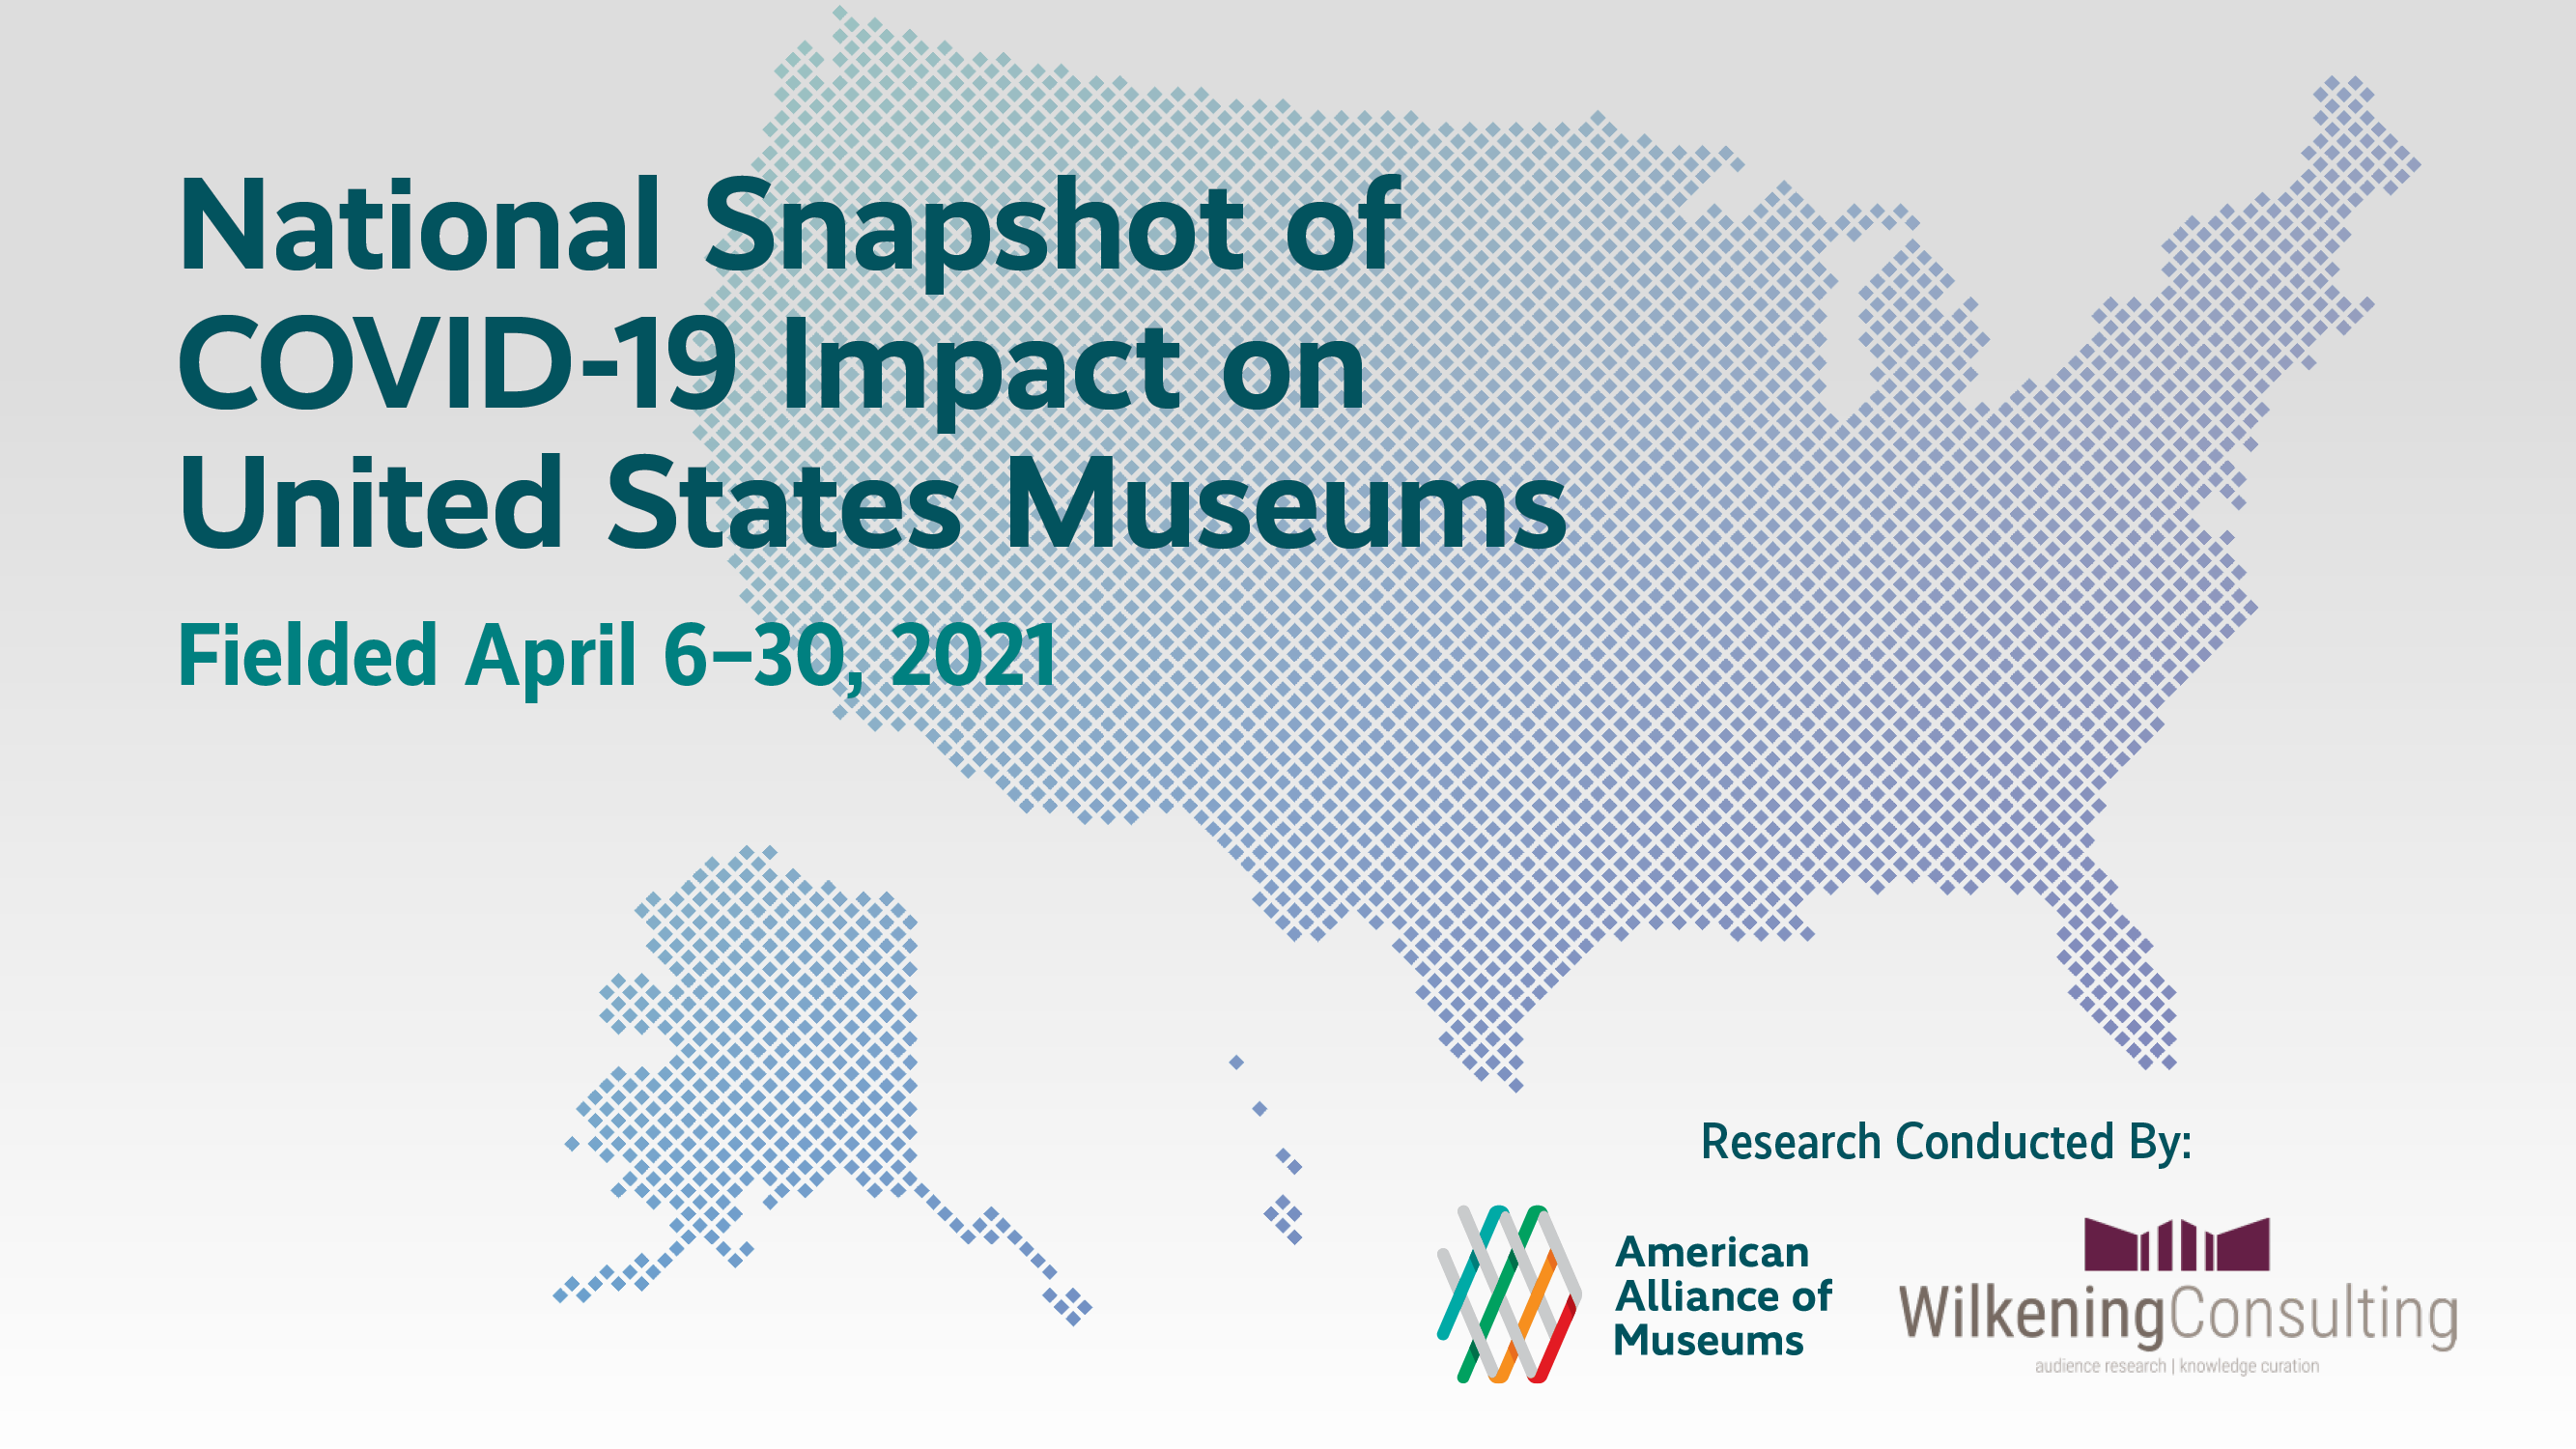 map of United States overlayed with text that reads National Snapshot of COVID-19 Impact on United States Museums fielded April 6-30, 2021